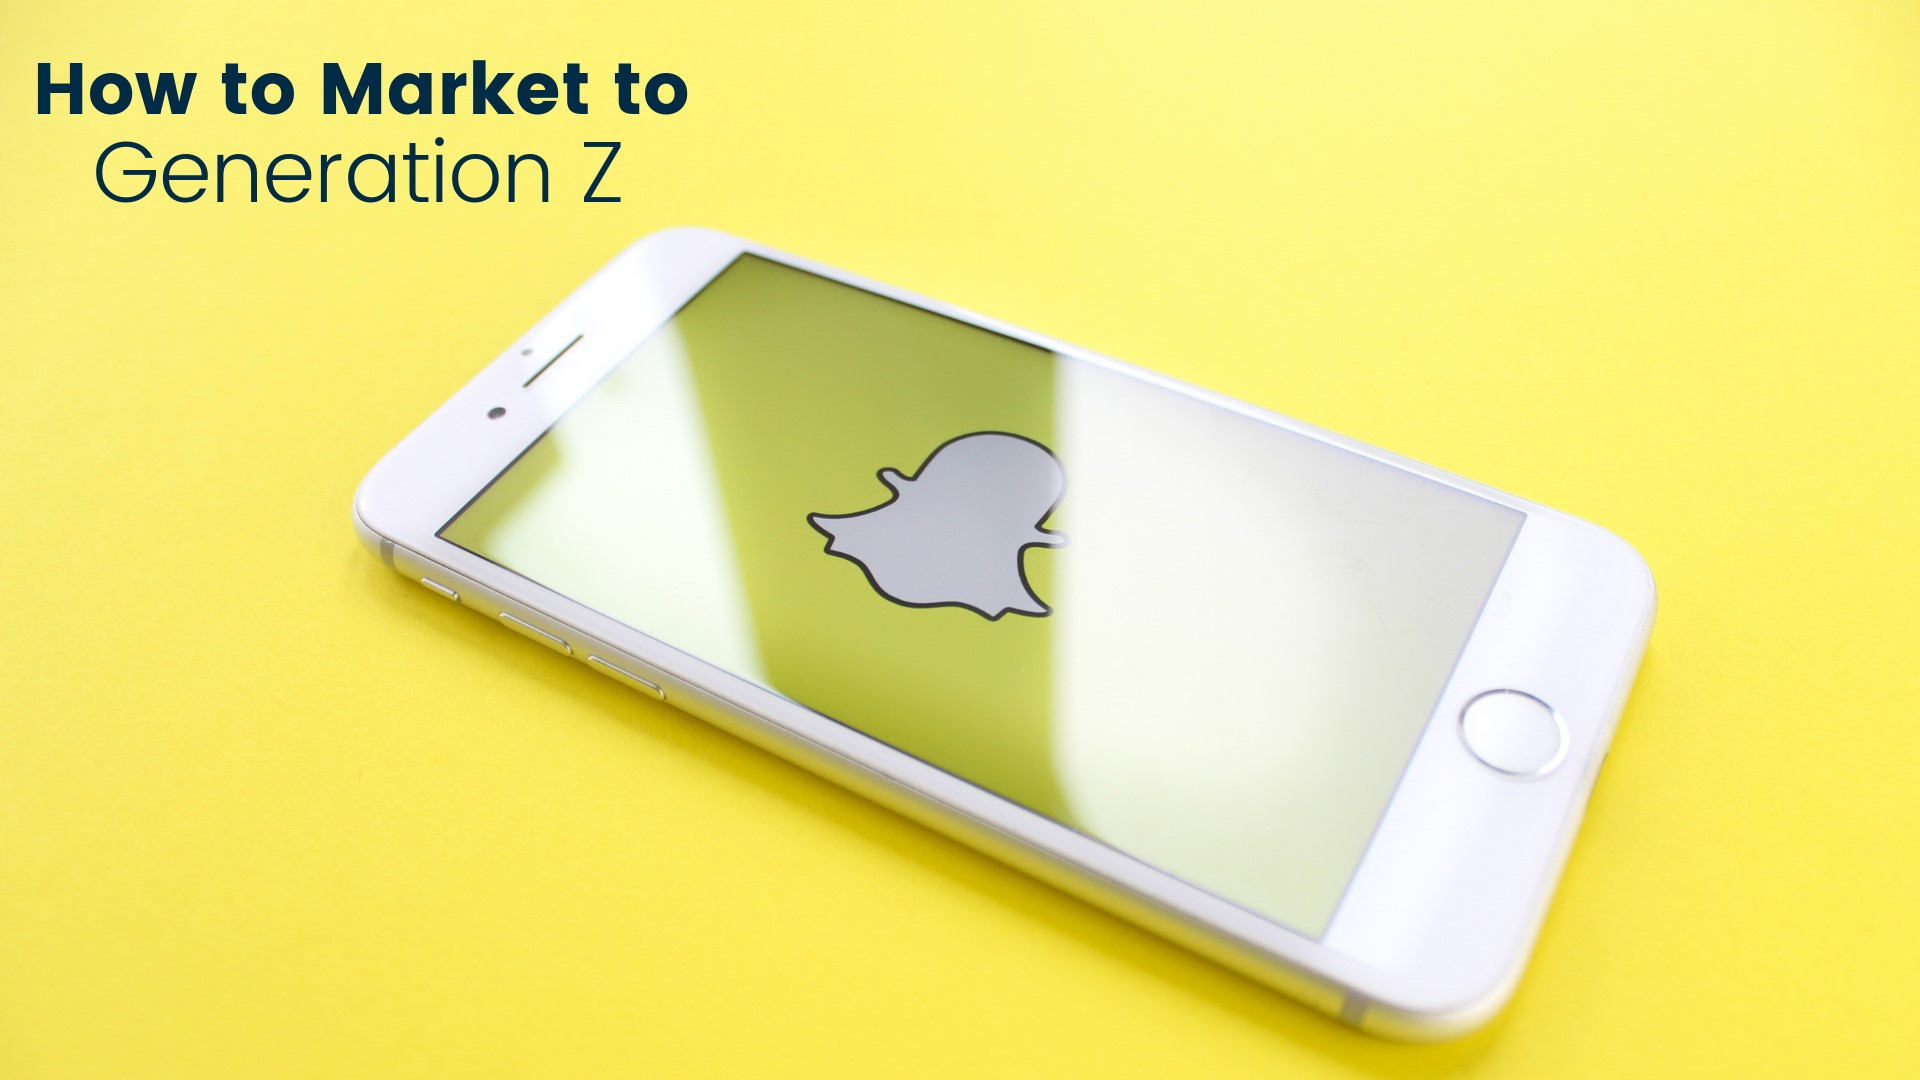 how-to-market-to-generation-z.jpg